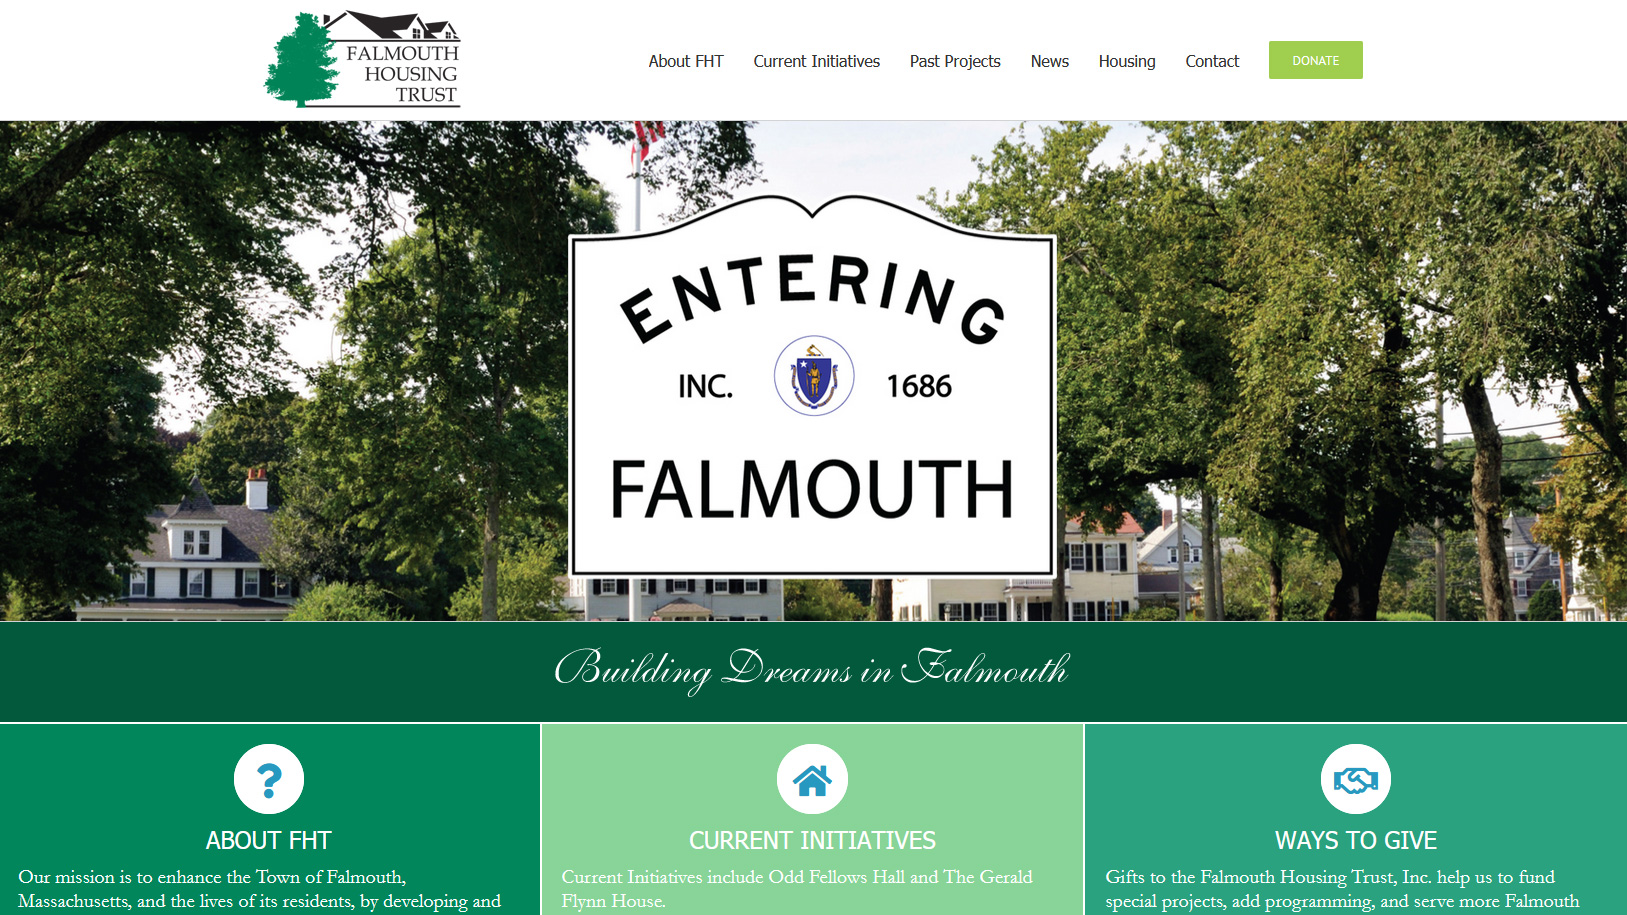 Portfolio Falmouth Housing Trust website design